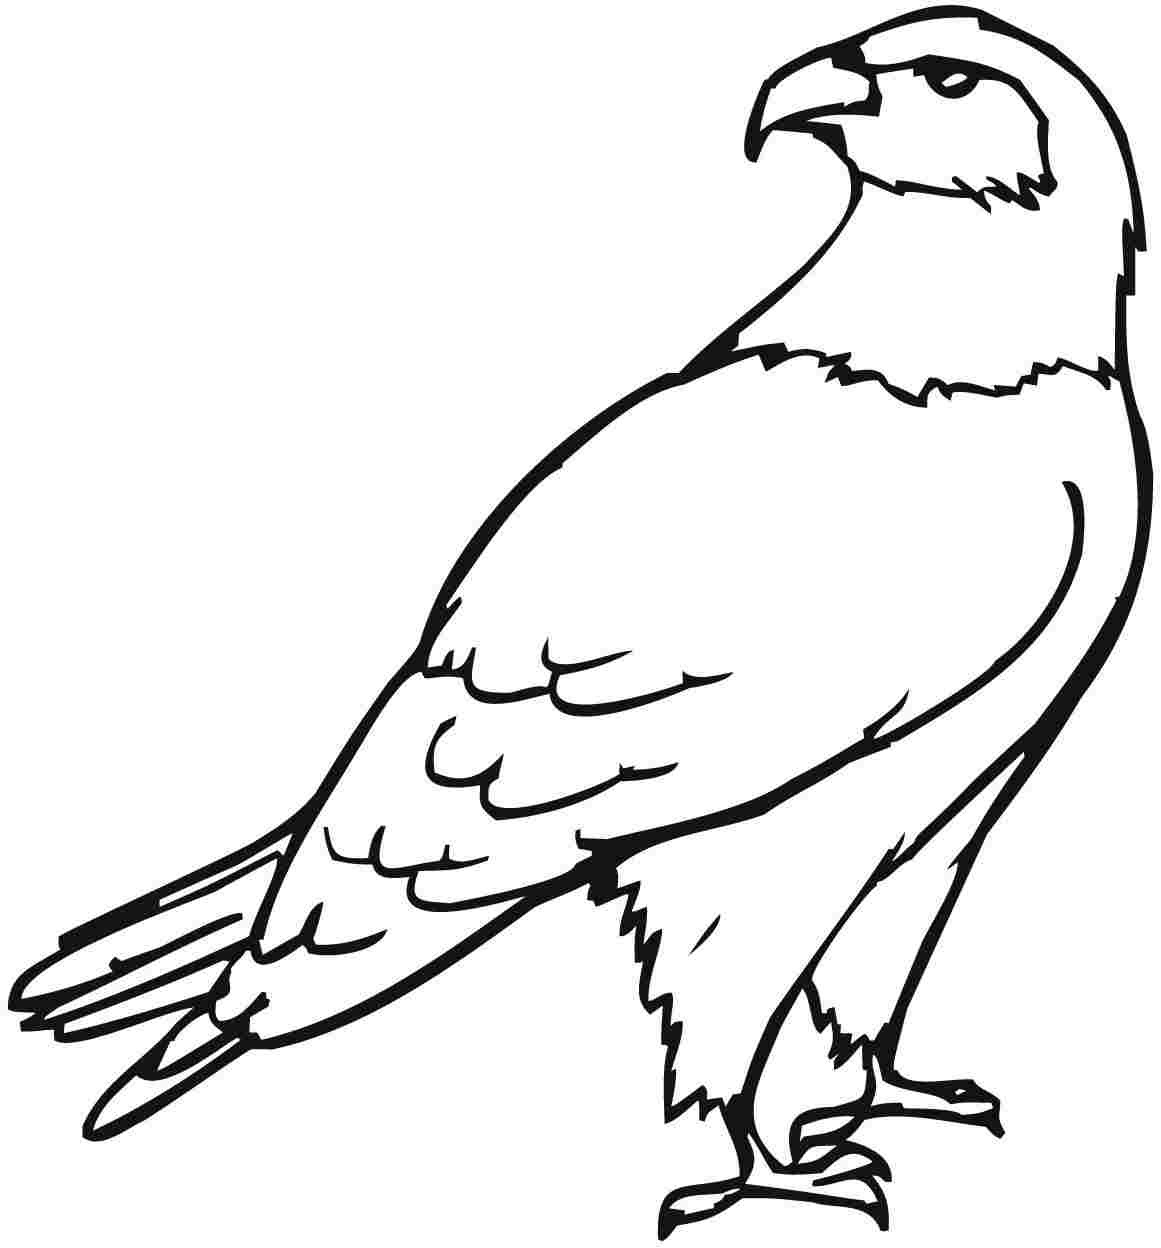 eagle coloring pages eagle coloring pages to download and print for free pages eagle coloring 1 1